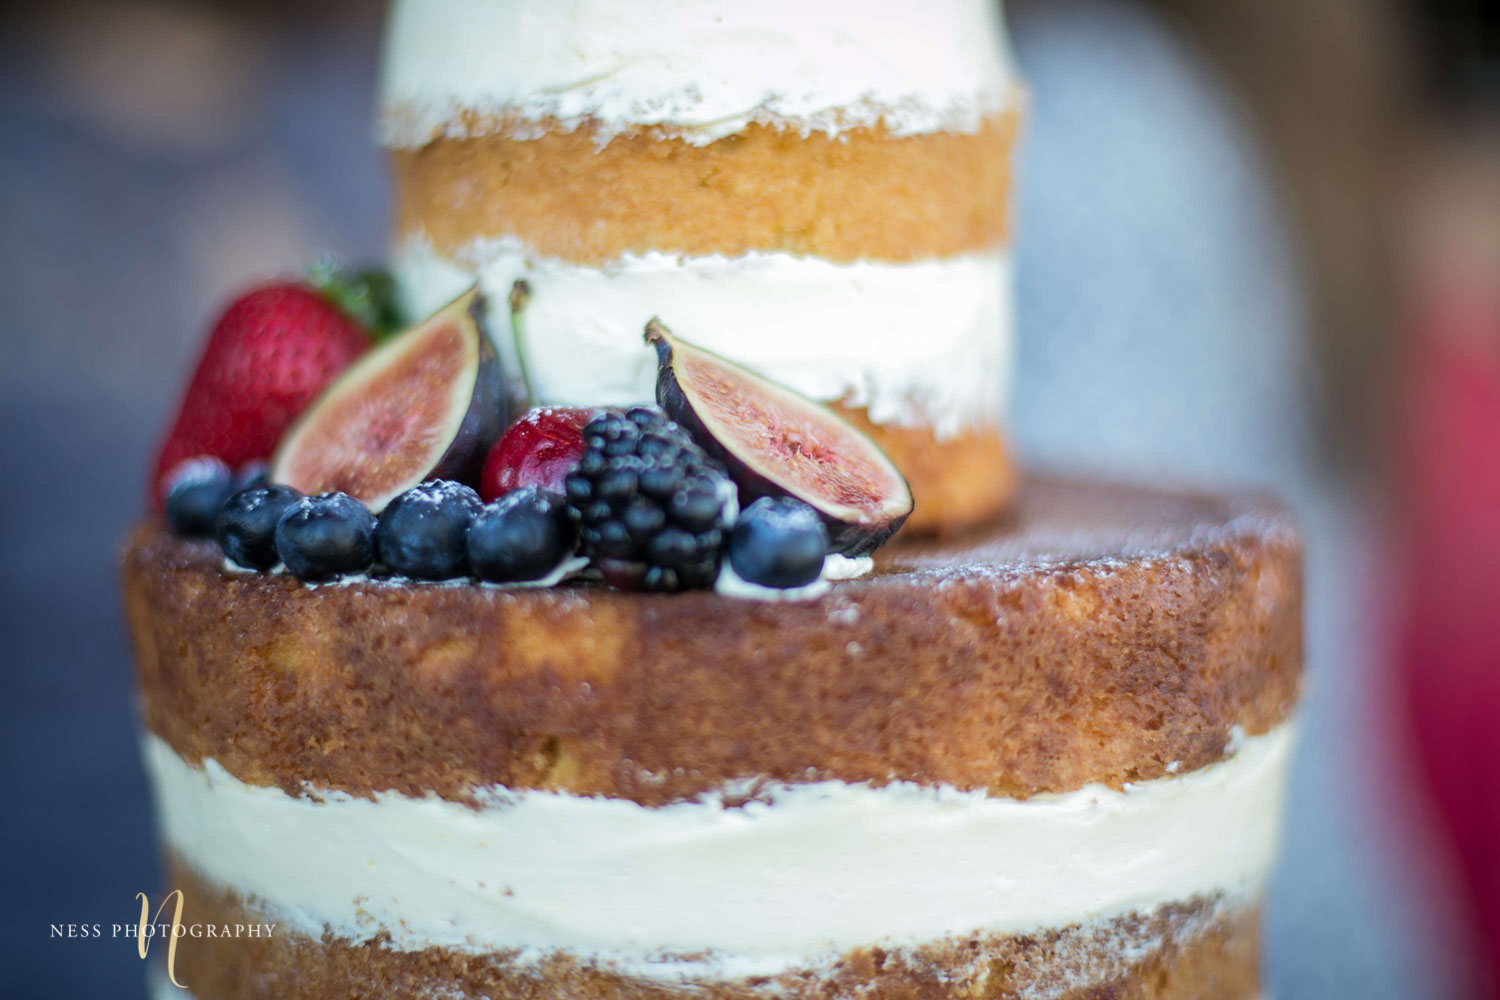 figs and berries on naked cake at engagement Party in Montreal